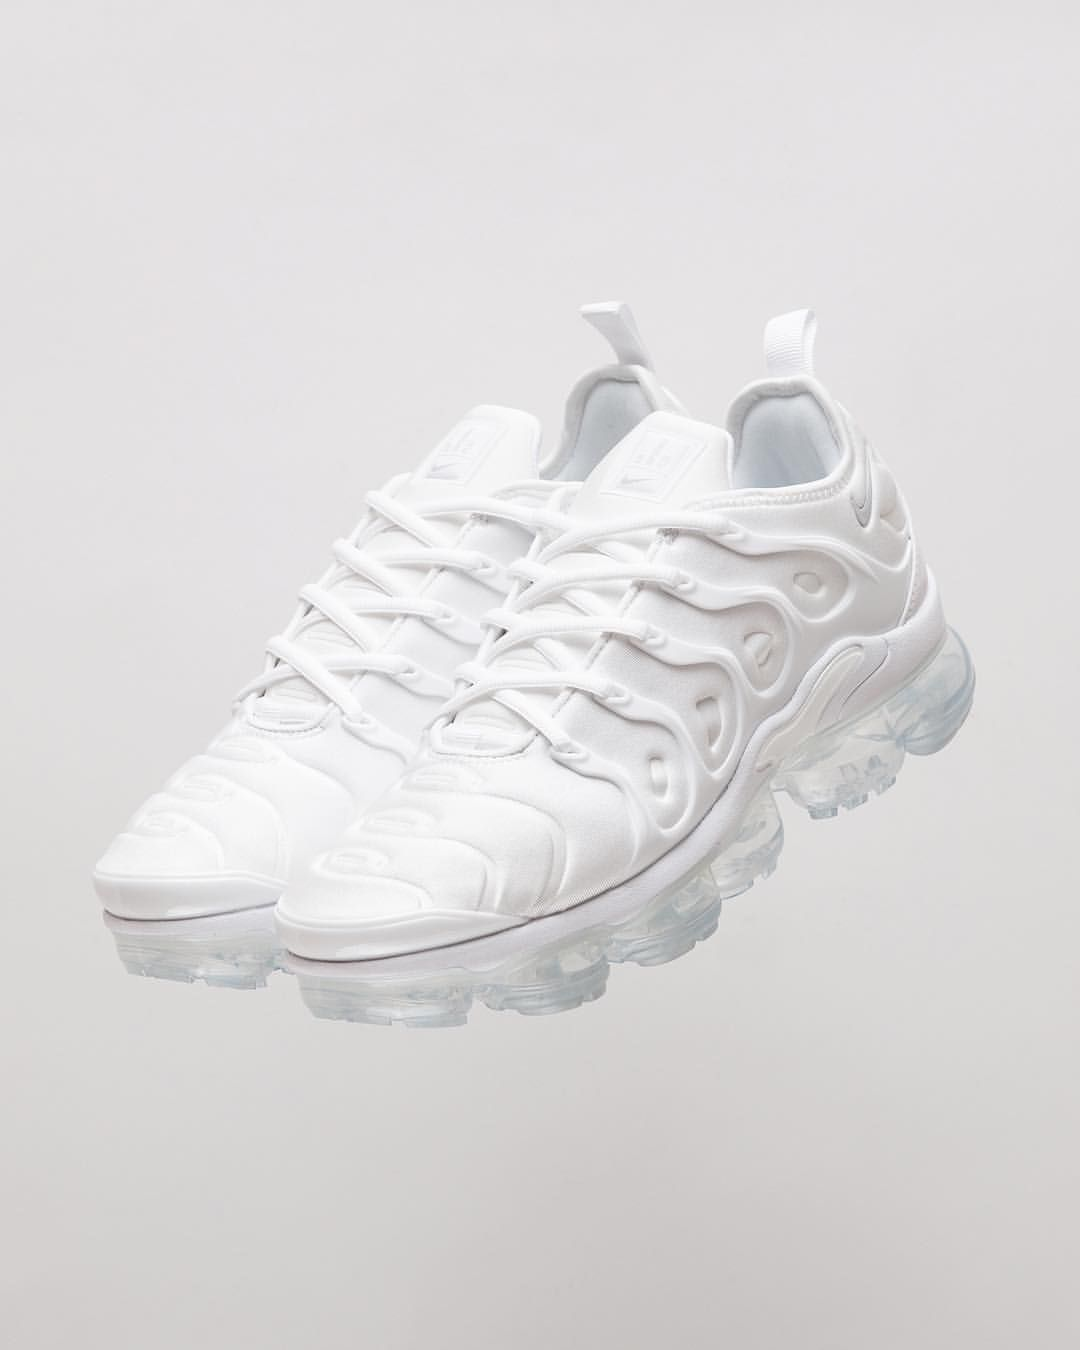 e6b6c85019fdd Titolo Sneaker Boutique sur Instagram   NIKE Air Vapormax Plus ▫  White White-Pure Platinum⠀⠀⠀⠀⠀ ⠀⠀⠀⠀⠀ available online and in-store   titoloshop ...